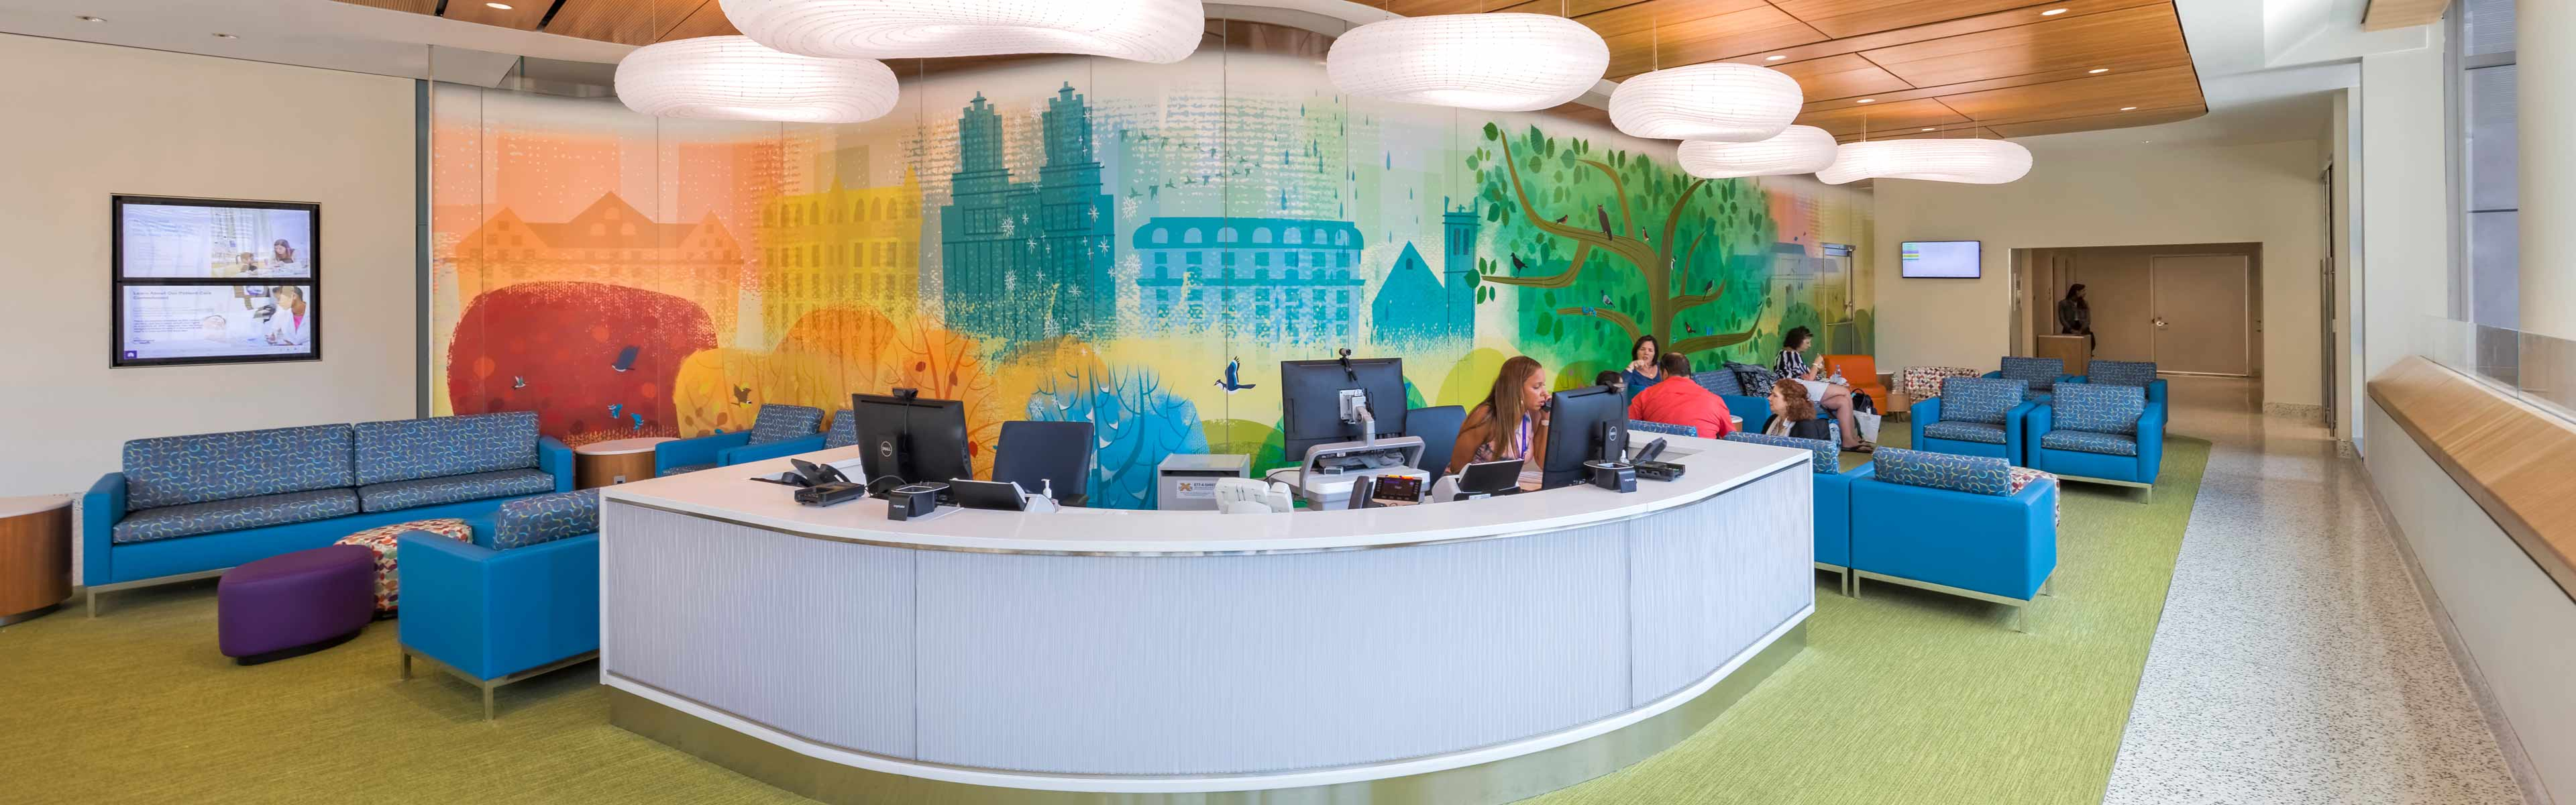 Hassenfeld Children's Hospital Fourth Floor Reception Area